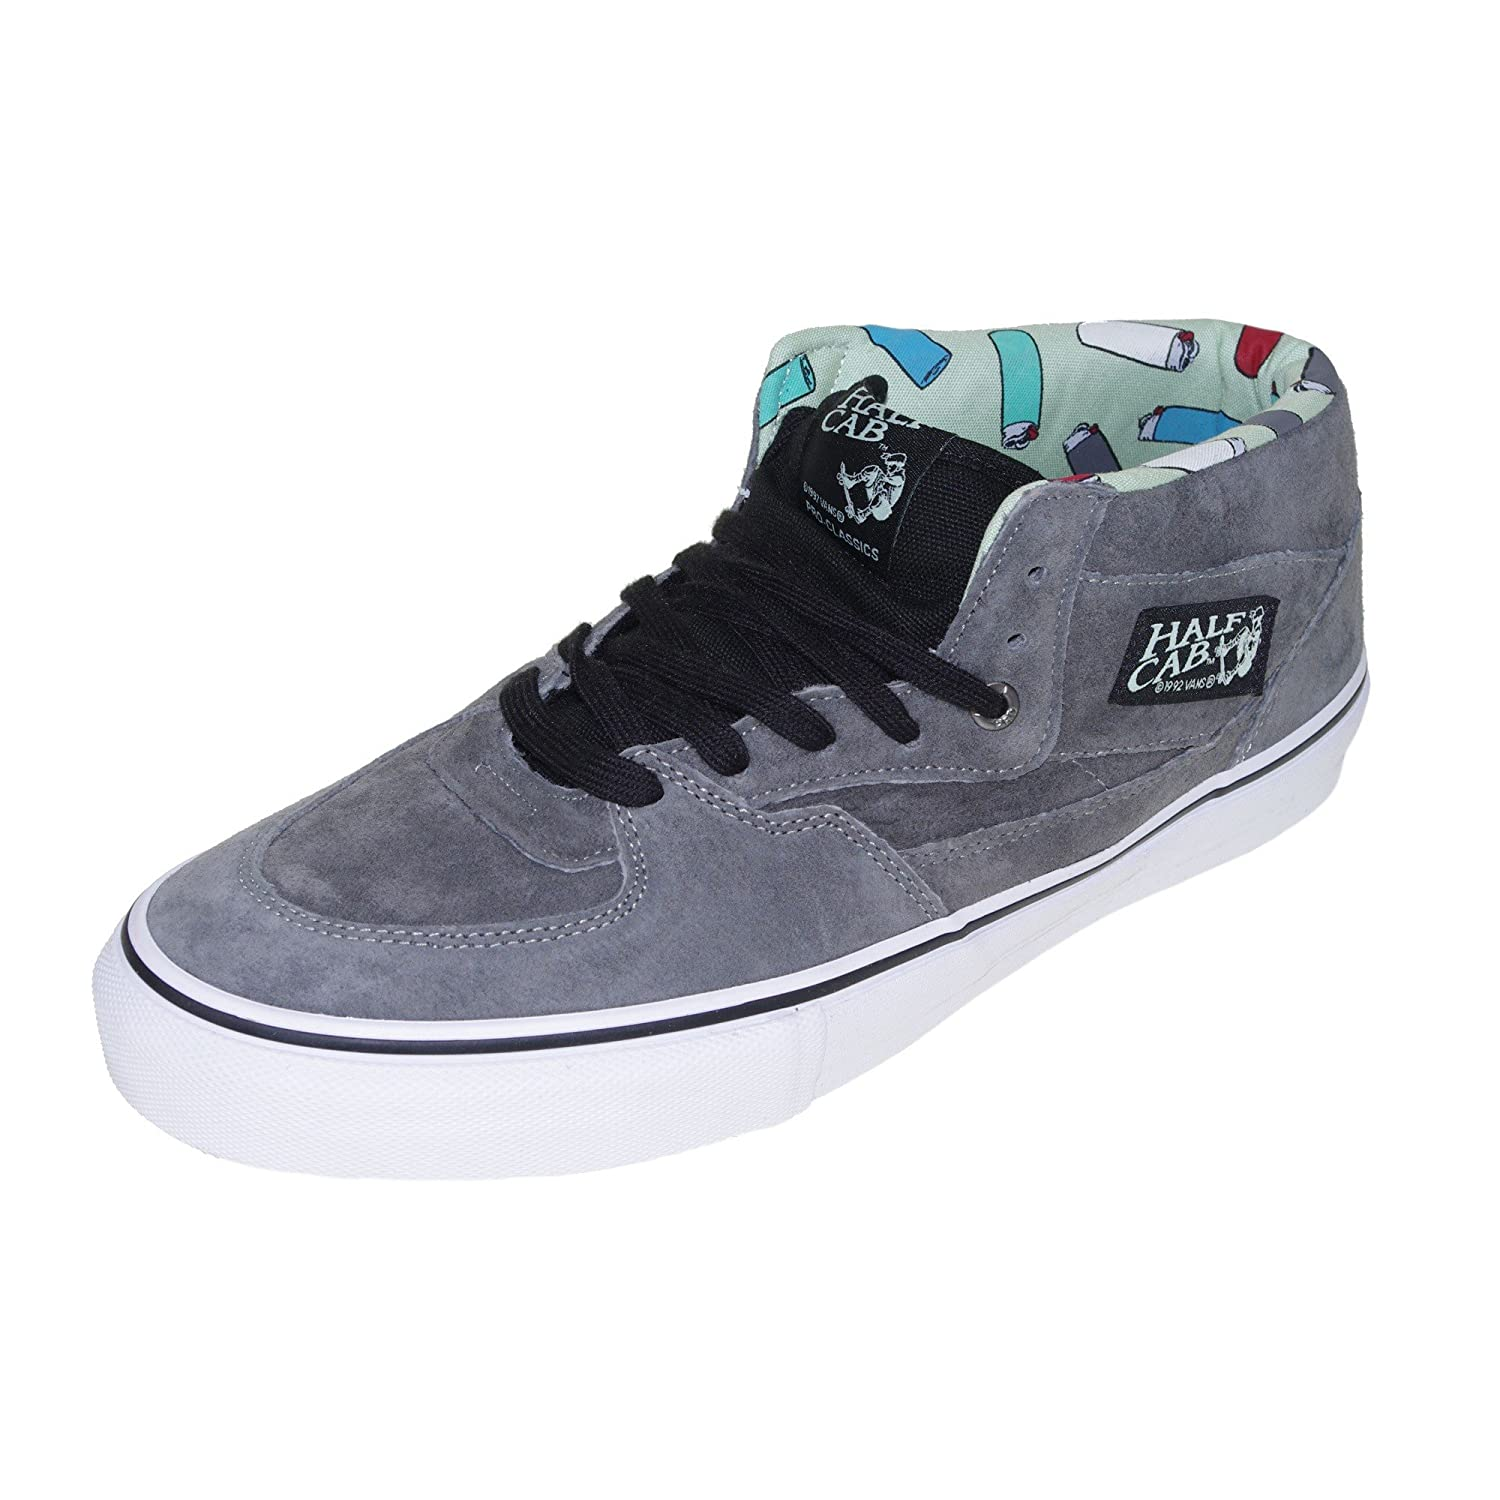 97288cbceb2 Vans Half Cab Pro (Lighters) Pewter Shoe VFDFHN (UK12)  Amazon.co.uk  Shoes    Bags